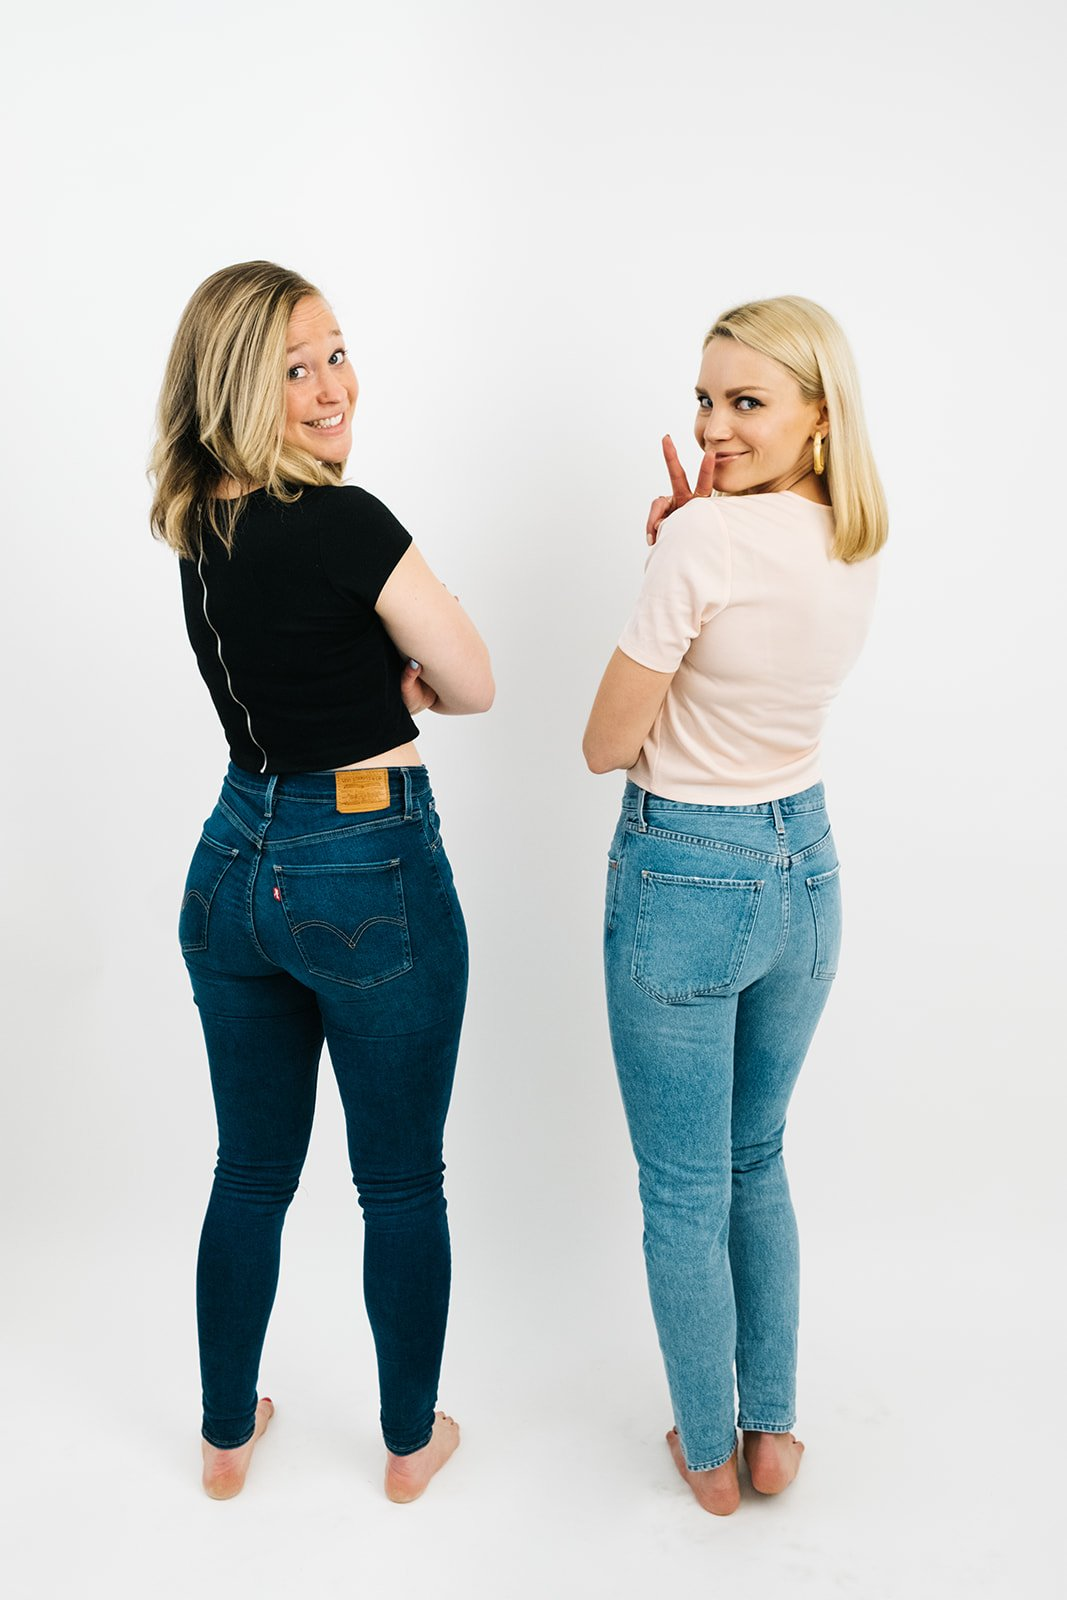 two women in jeans and t-shirts looking over their shoulders